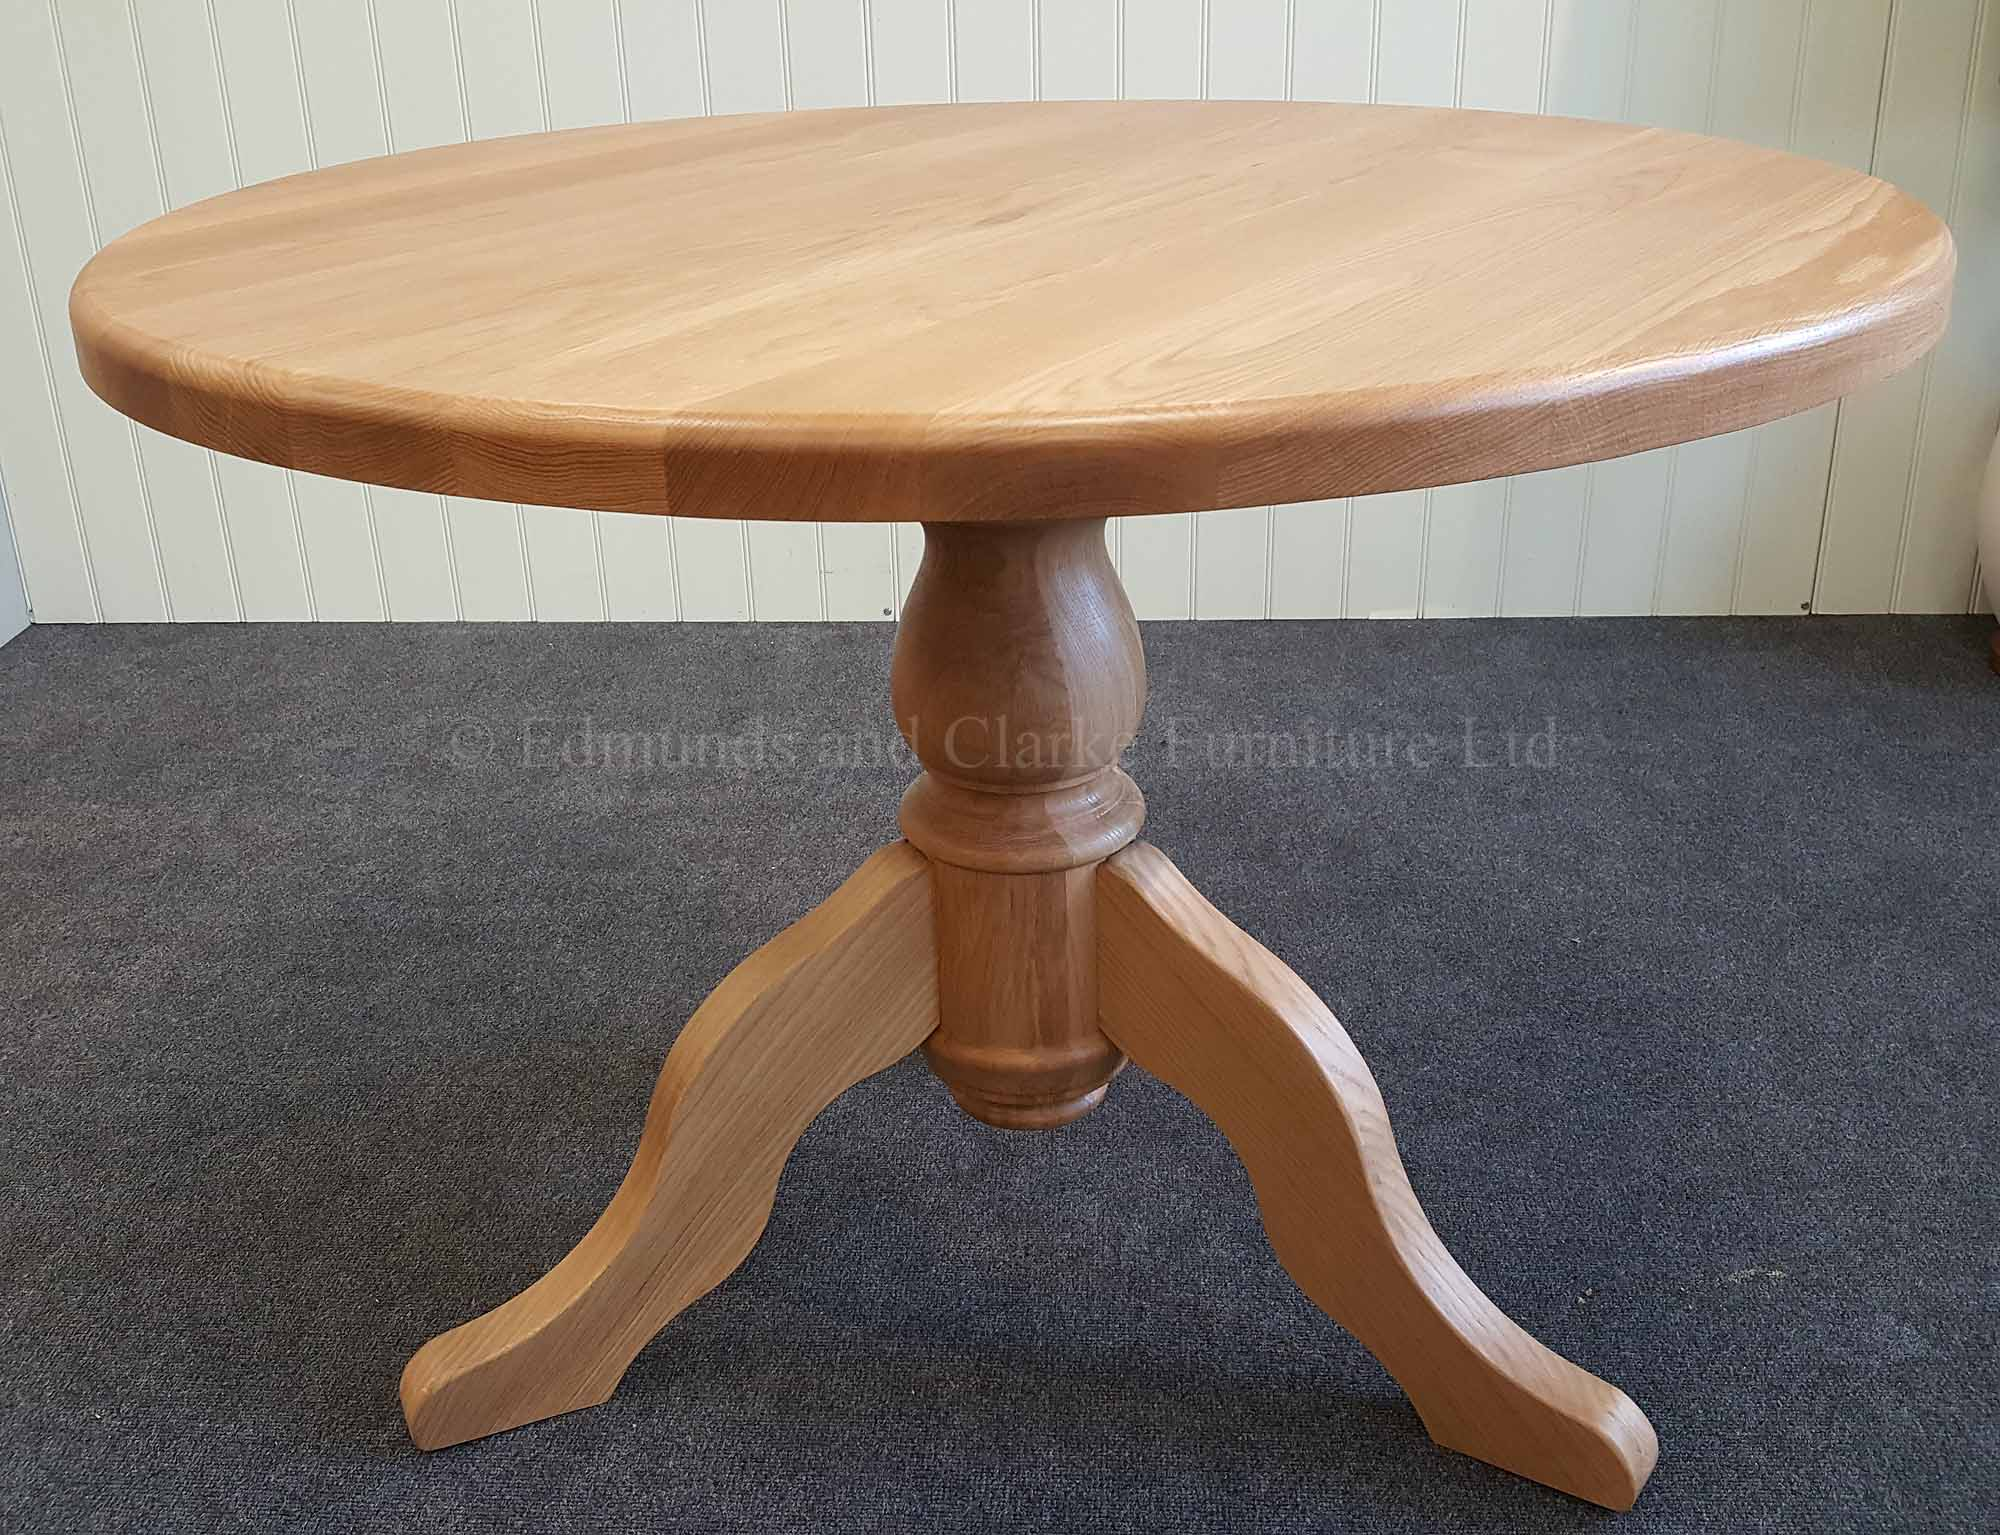 90cm circular round oak dining table